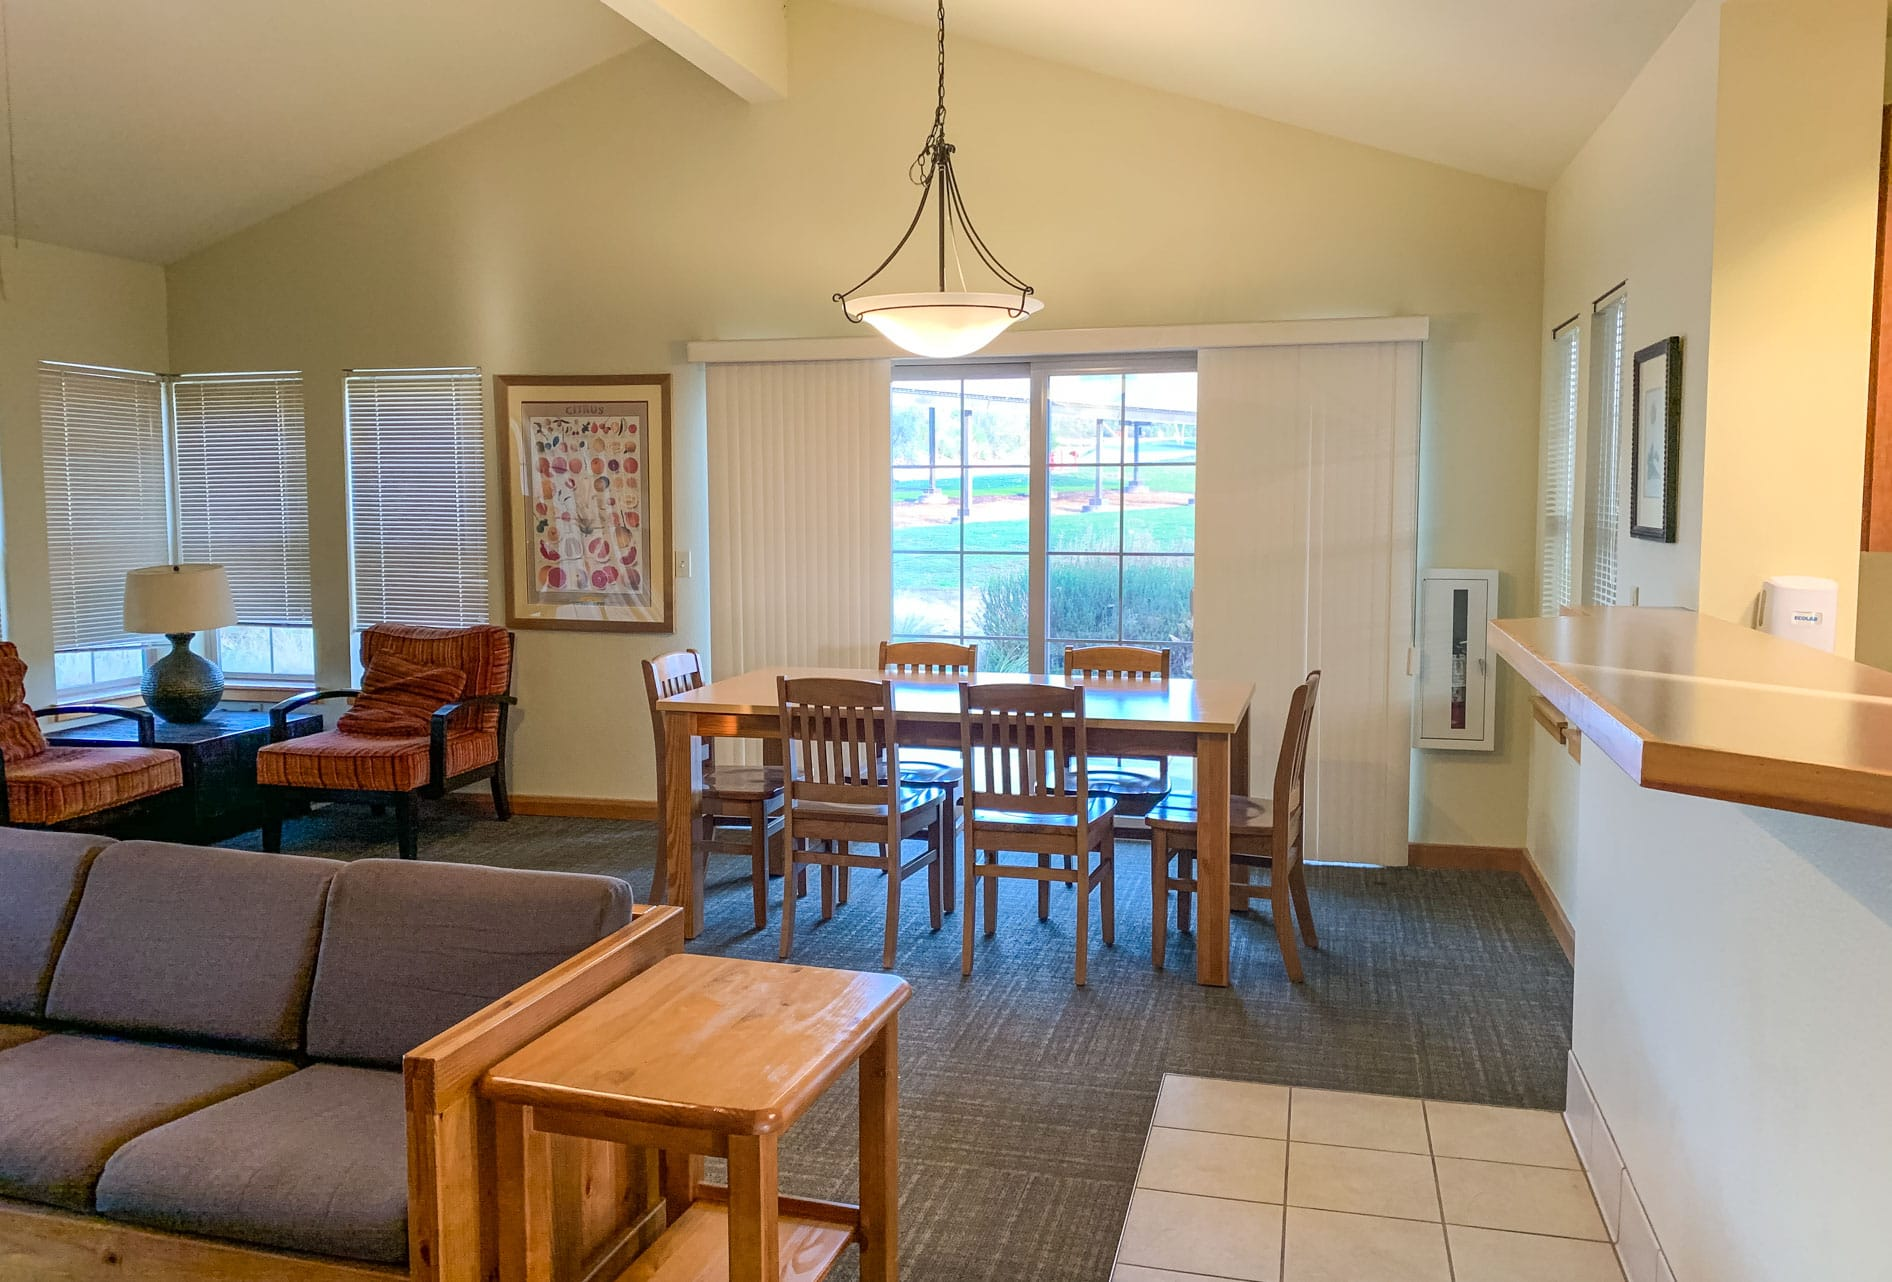 Dining room of Bungalow lodging area